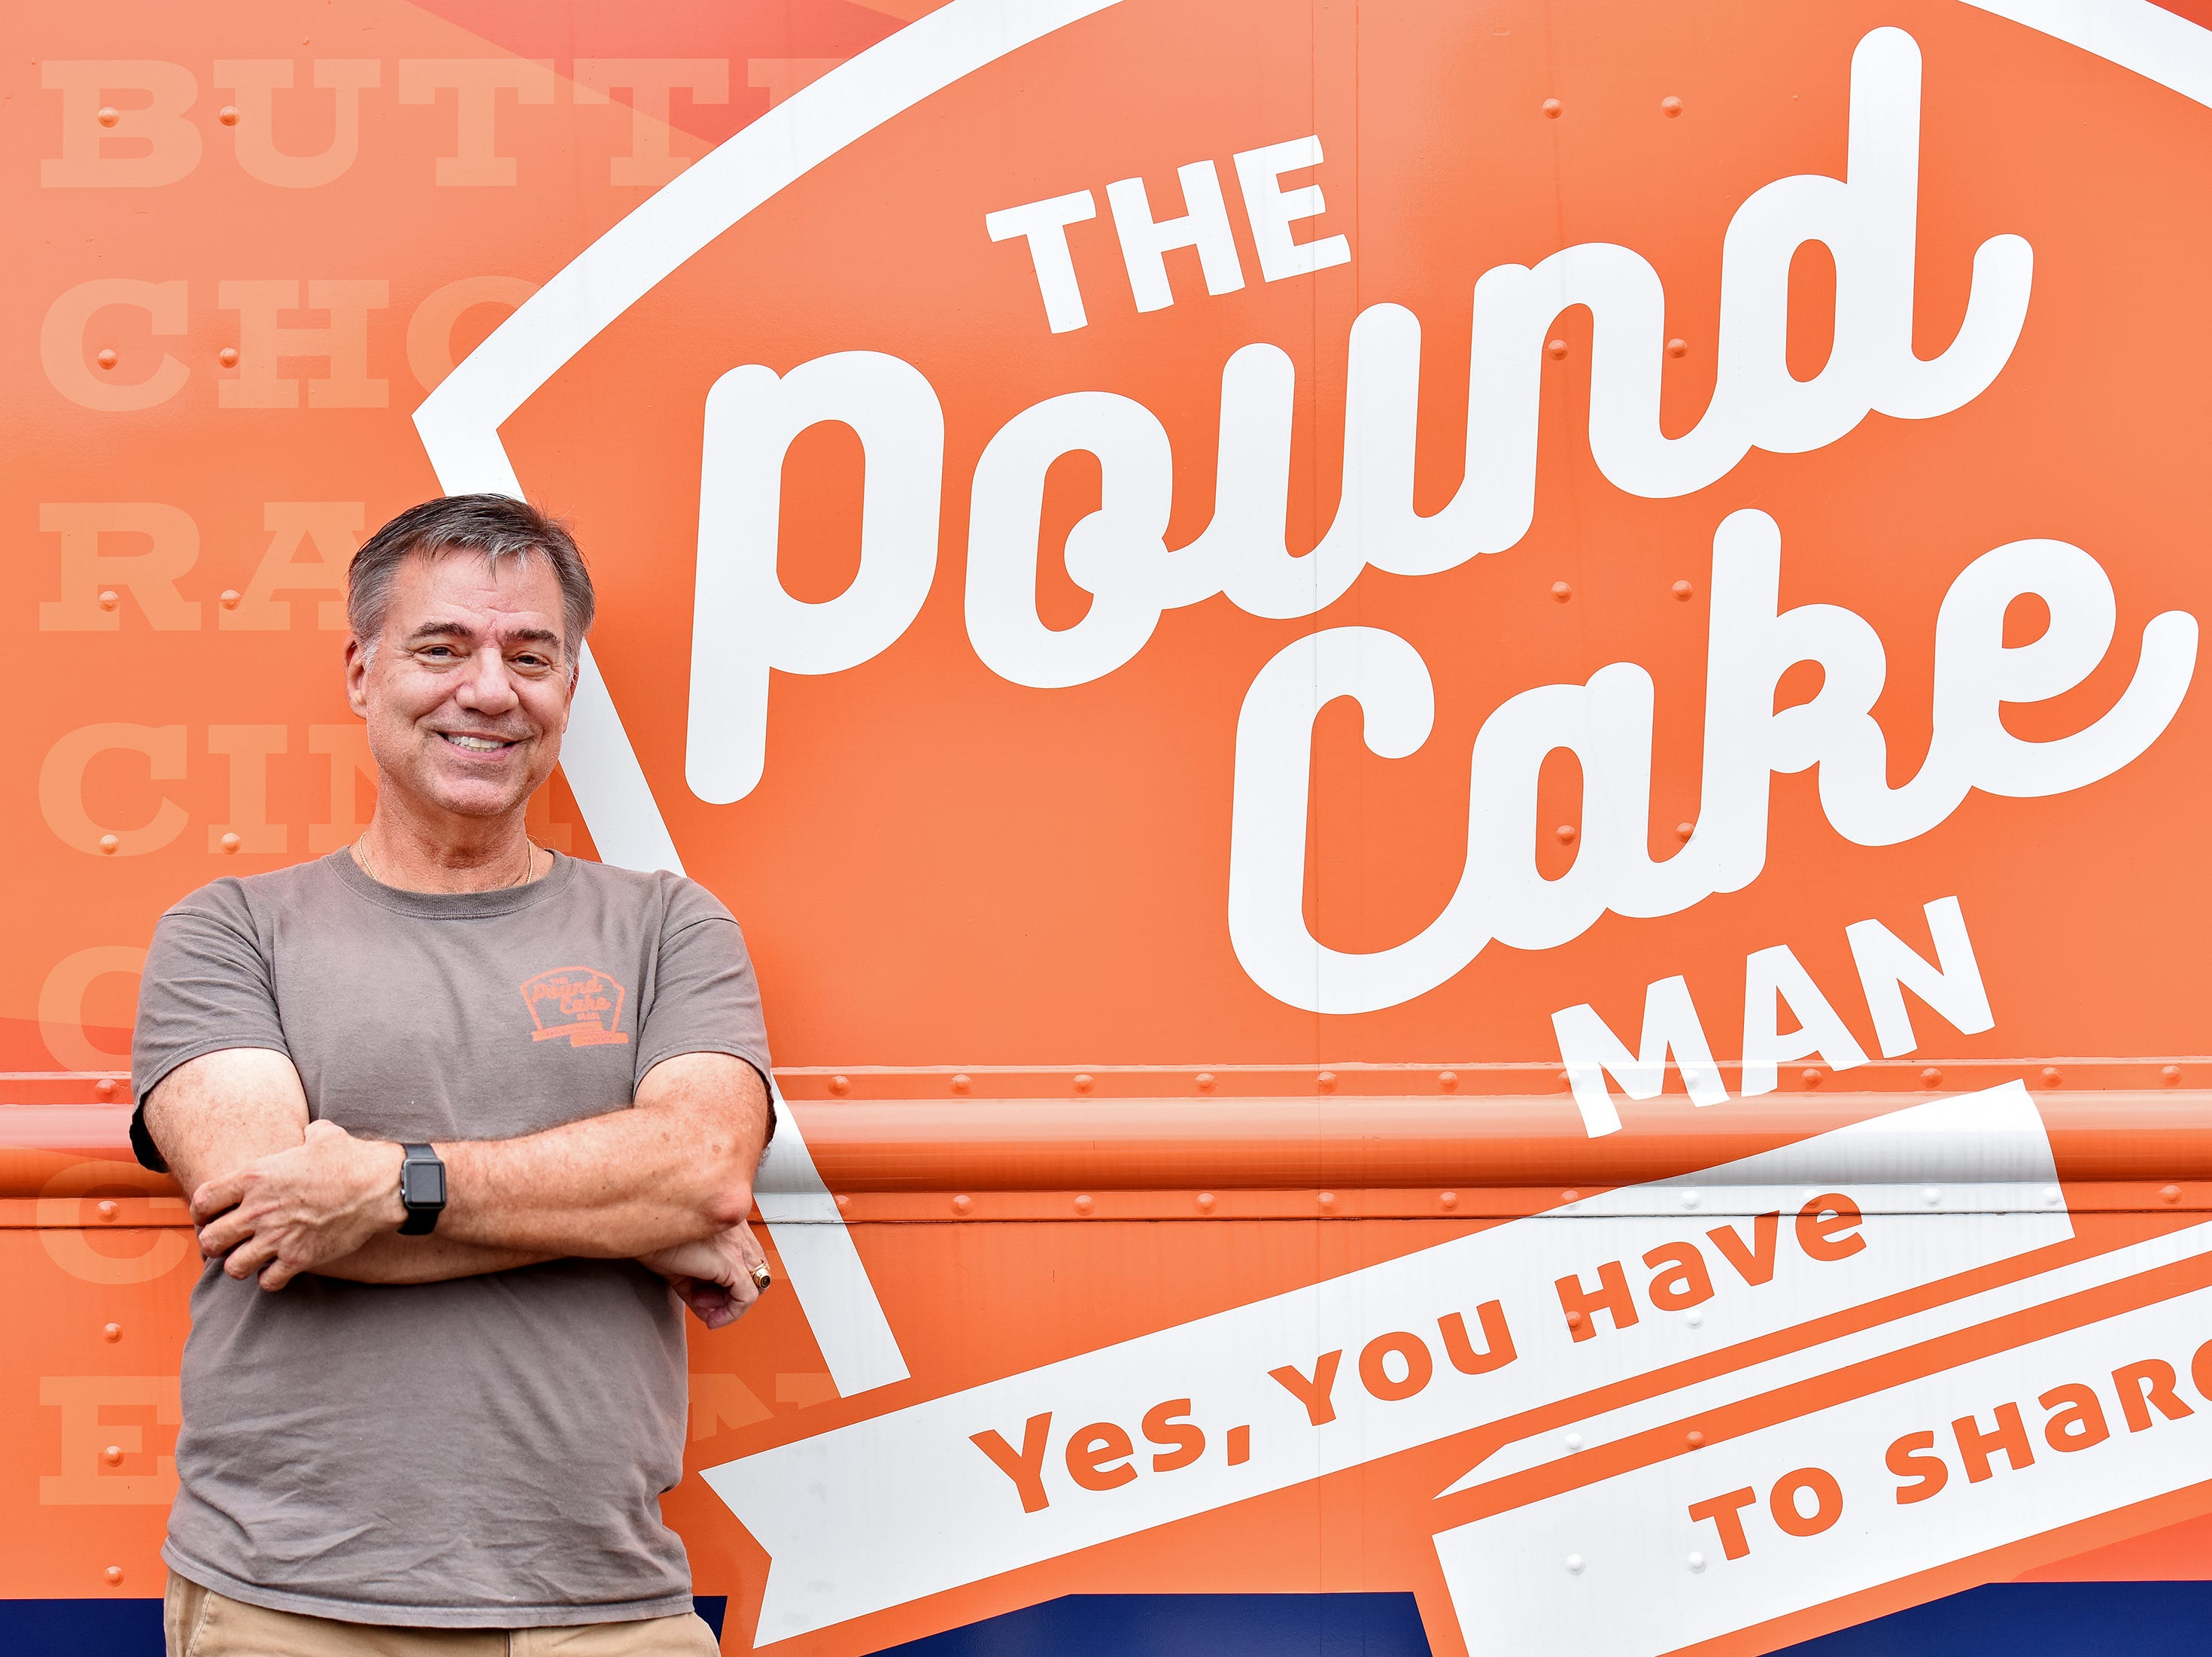 Jeff Bennett owns and operates The Pound Cake Man food truck.